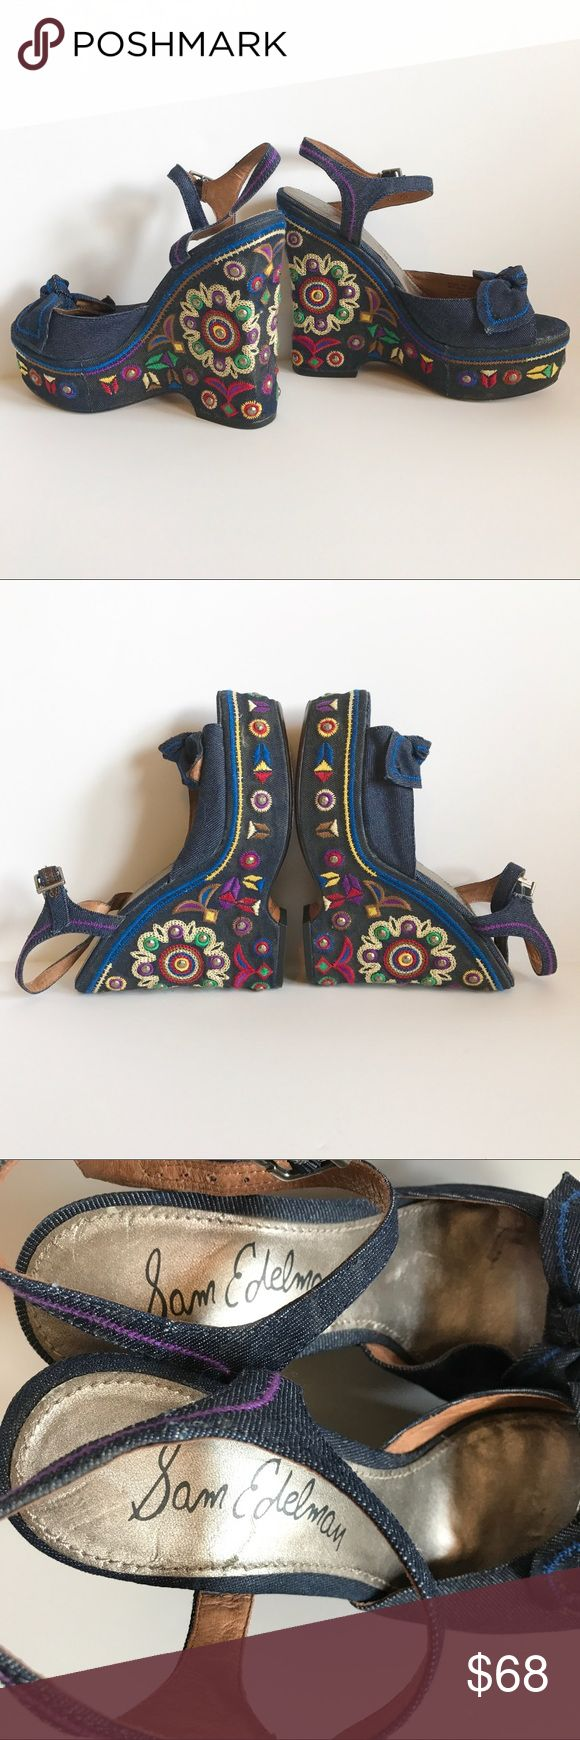 "SAM EDELMAN ""Rylee"" Wedge Sandal Perfection! Beautifully decorated Bohemian sandals. Wrapped in denim with studs, embroidery and more. Size 8. BOHO BABES - watch out! Must have :)    Thank you for looking and please check out the rest of my closet. Sam Edelman Shoes Wedges"